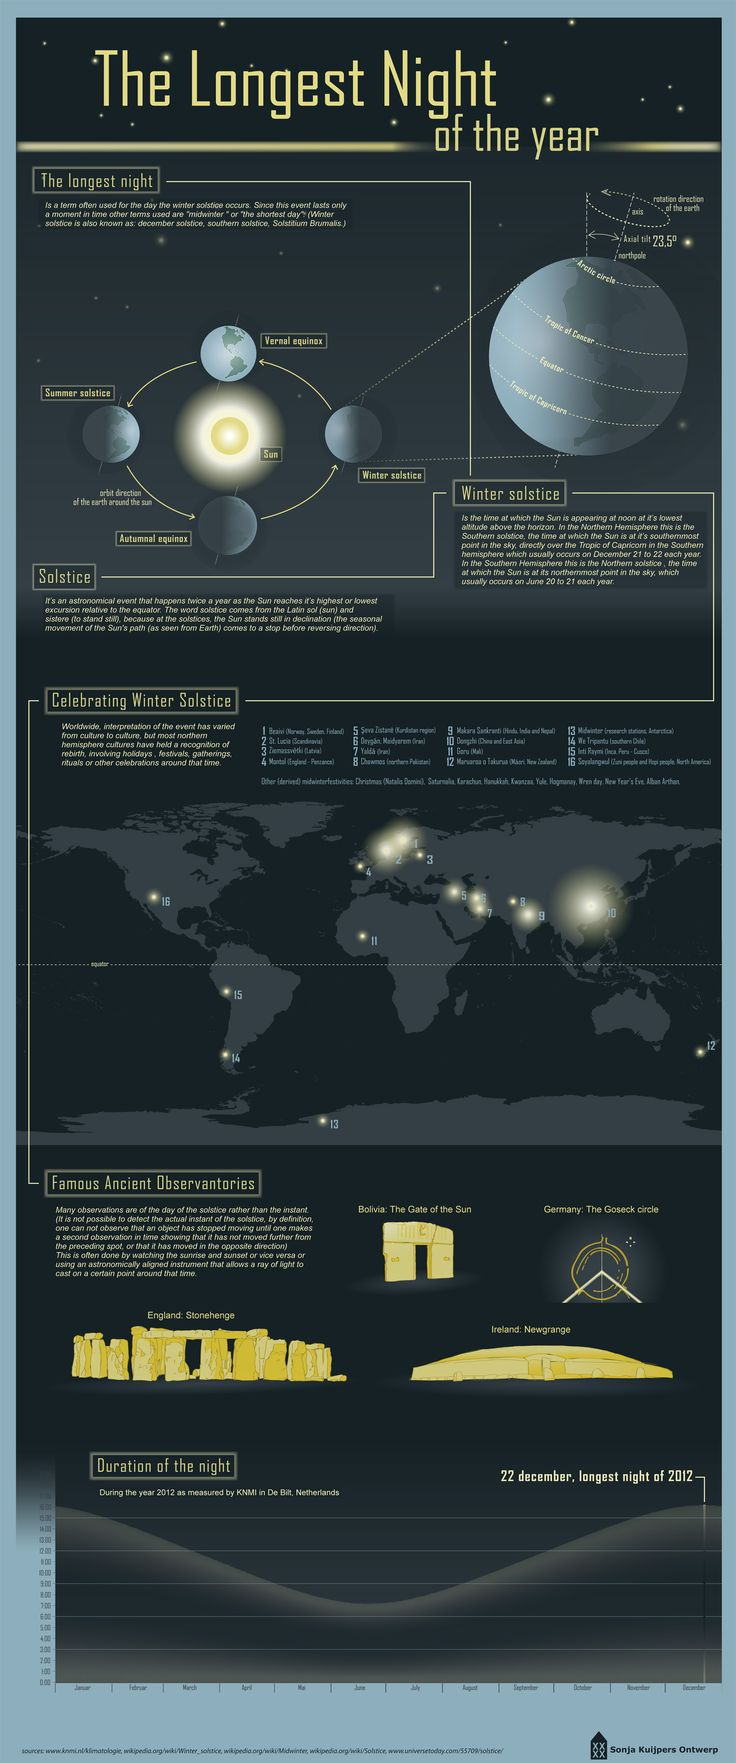 The longest night of the year: the Winter Solstice. Infographic includes a section on celebrating the winter solstice, worldwide.